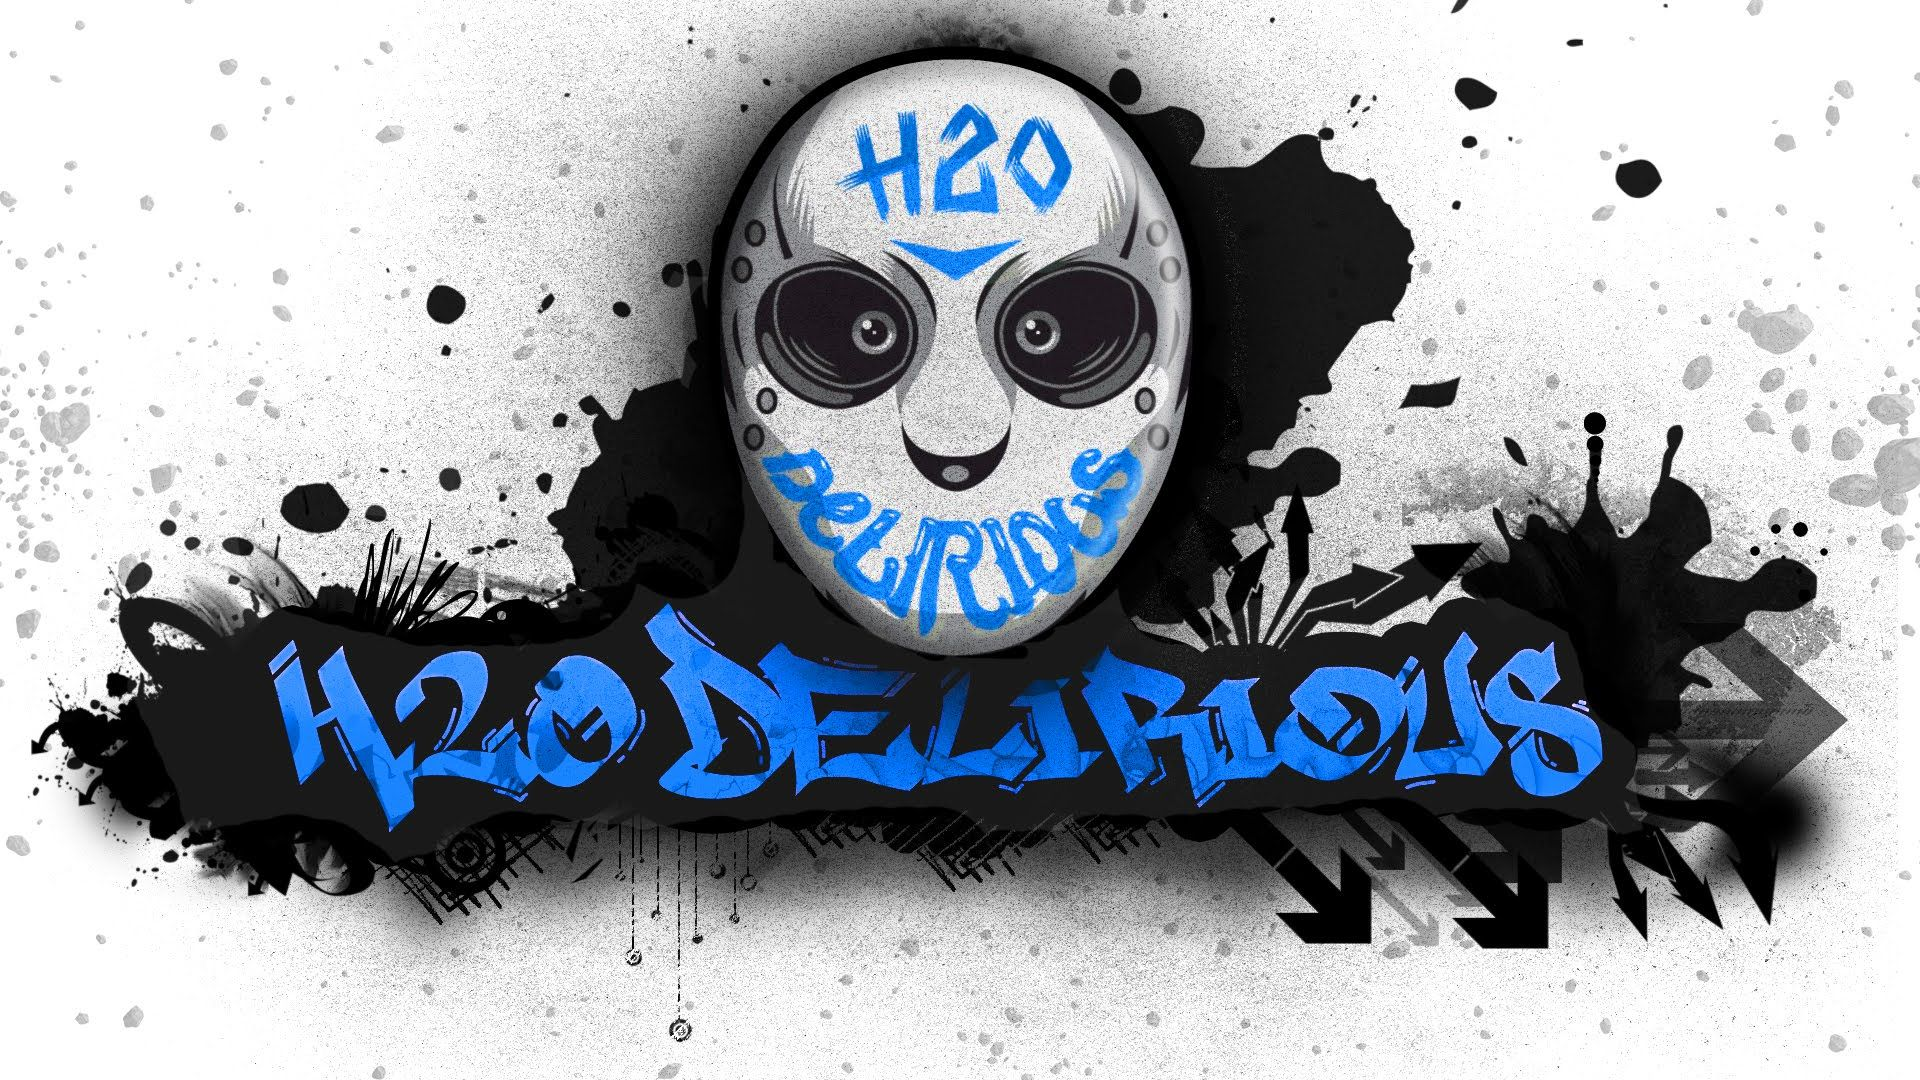 H2O Delirious Fan Art [ PHOTOSHOP TIME #2 ].